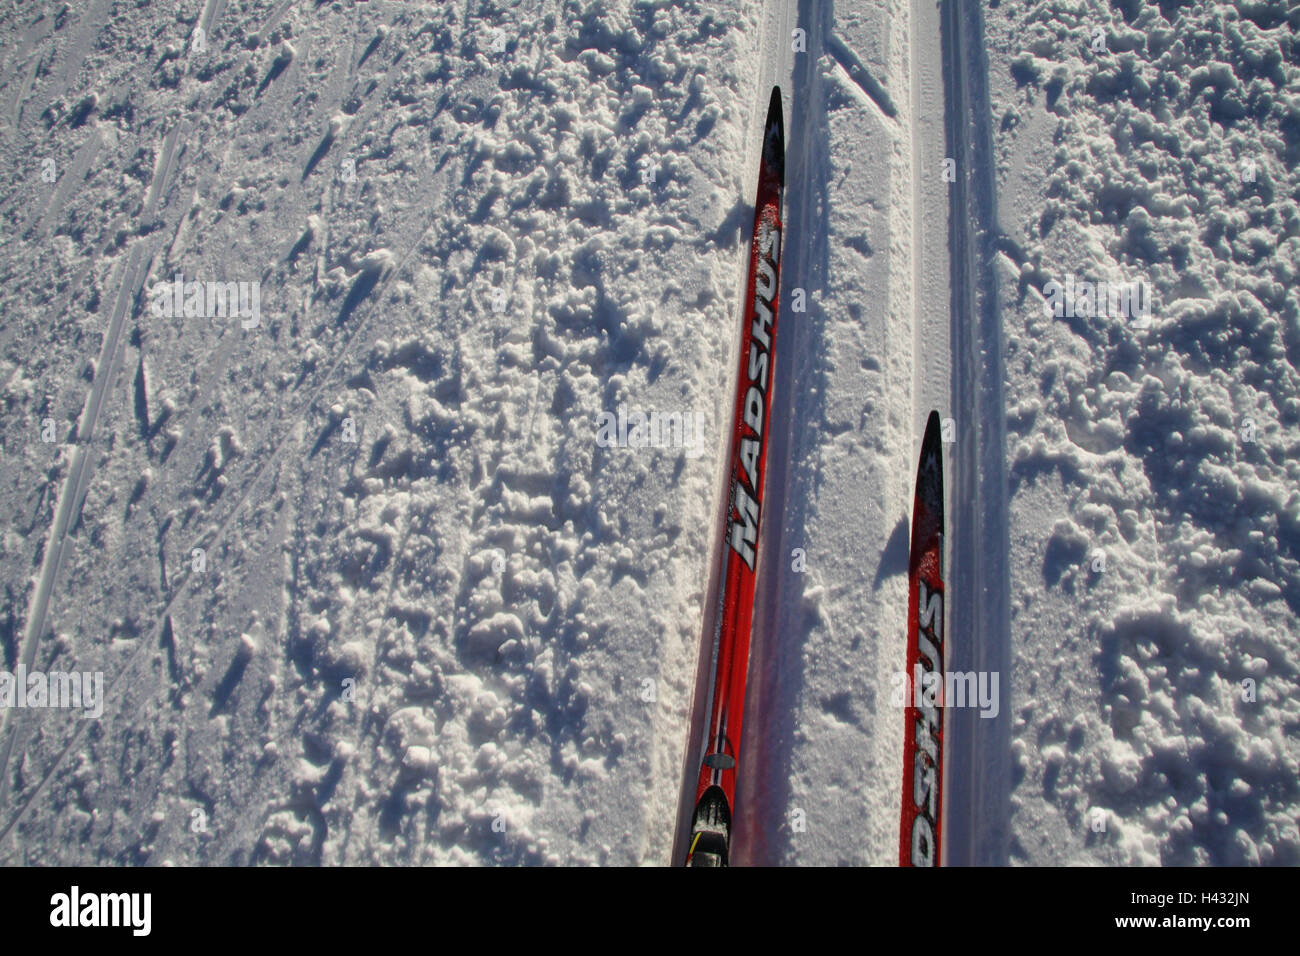 There go cross-country skiing, classically, cross-country trail, track, skis, detail, snow, ski points, cross-country - Stock Image